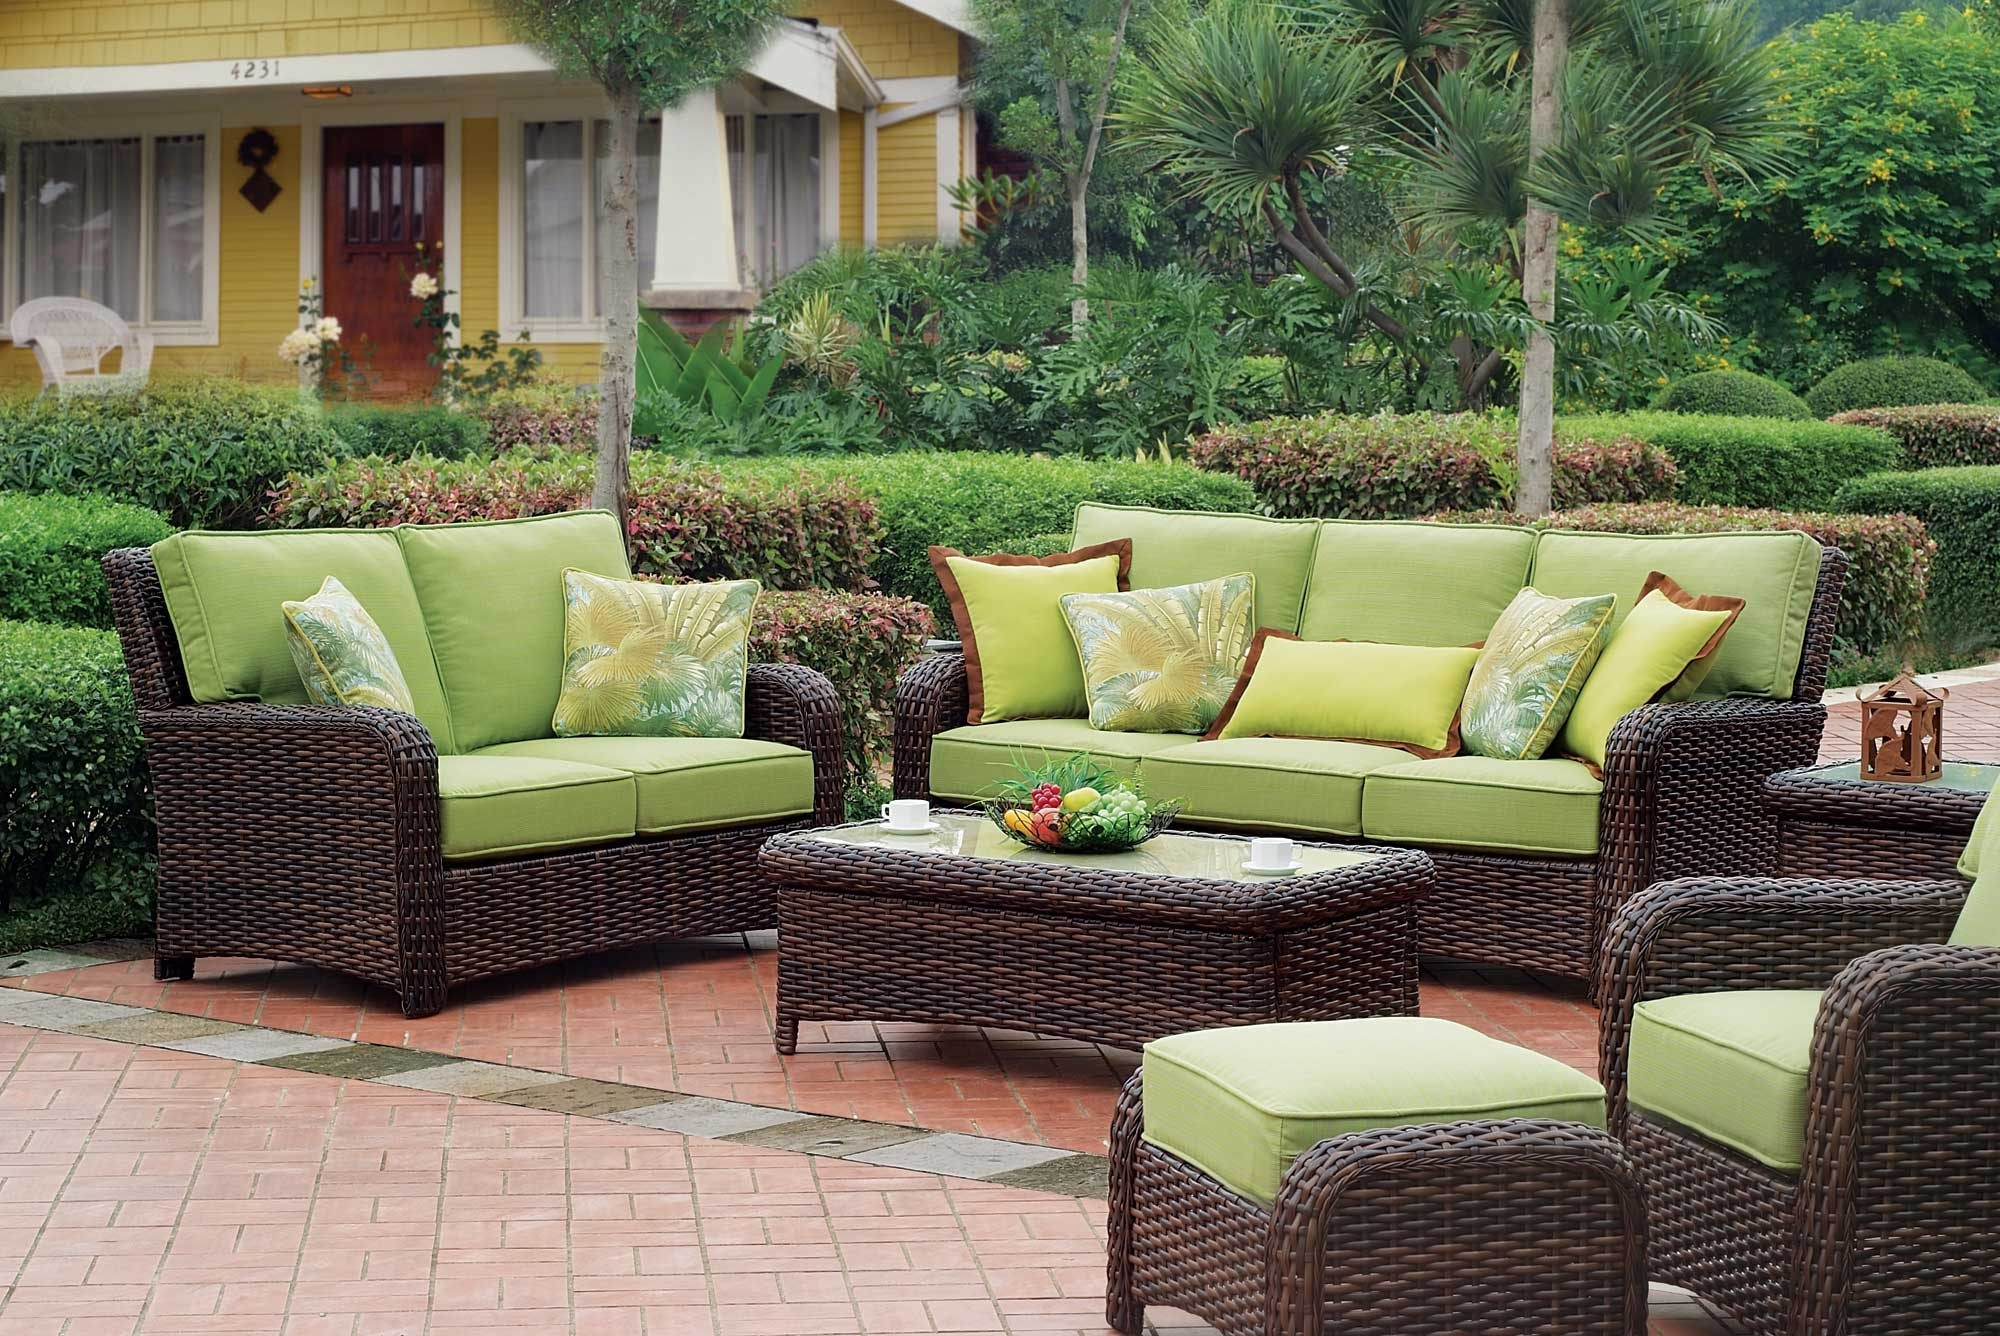 Cool Resin Wicker Patio Furniture For All Weather Hgnv In Outdoor Wicker Furniture Cushions Warmth Outdoor Wicker Furniture Cushions